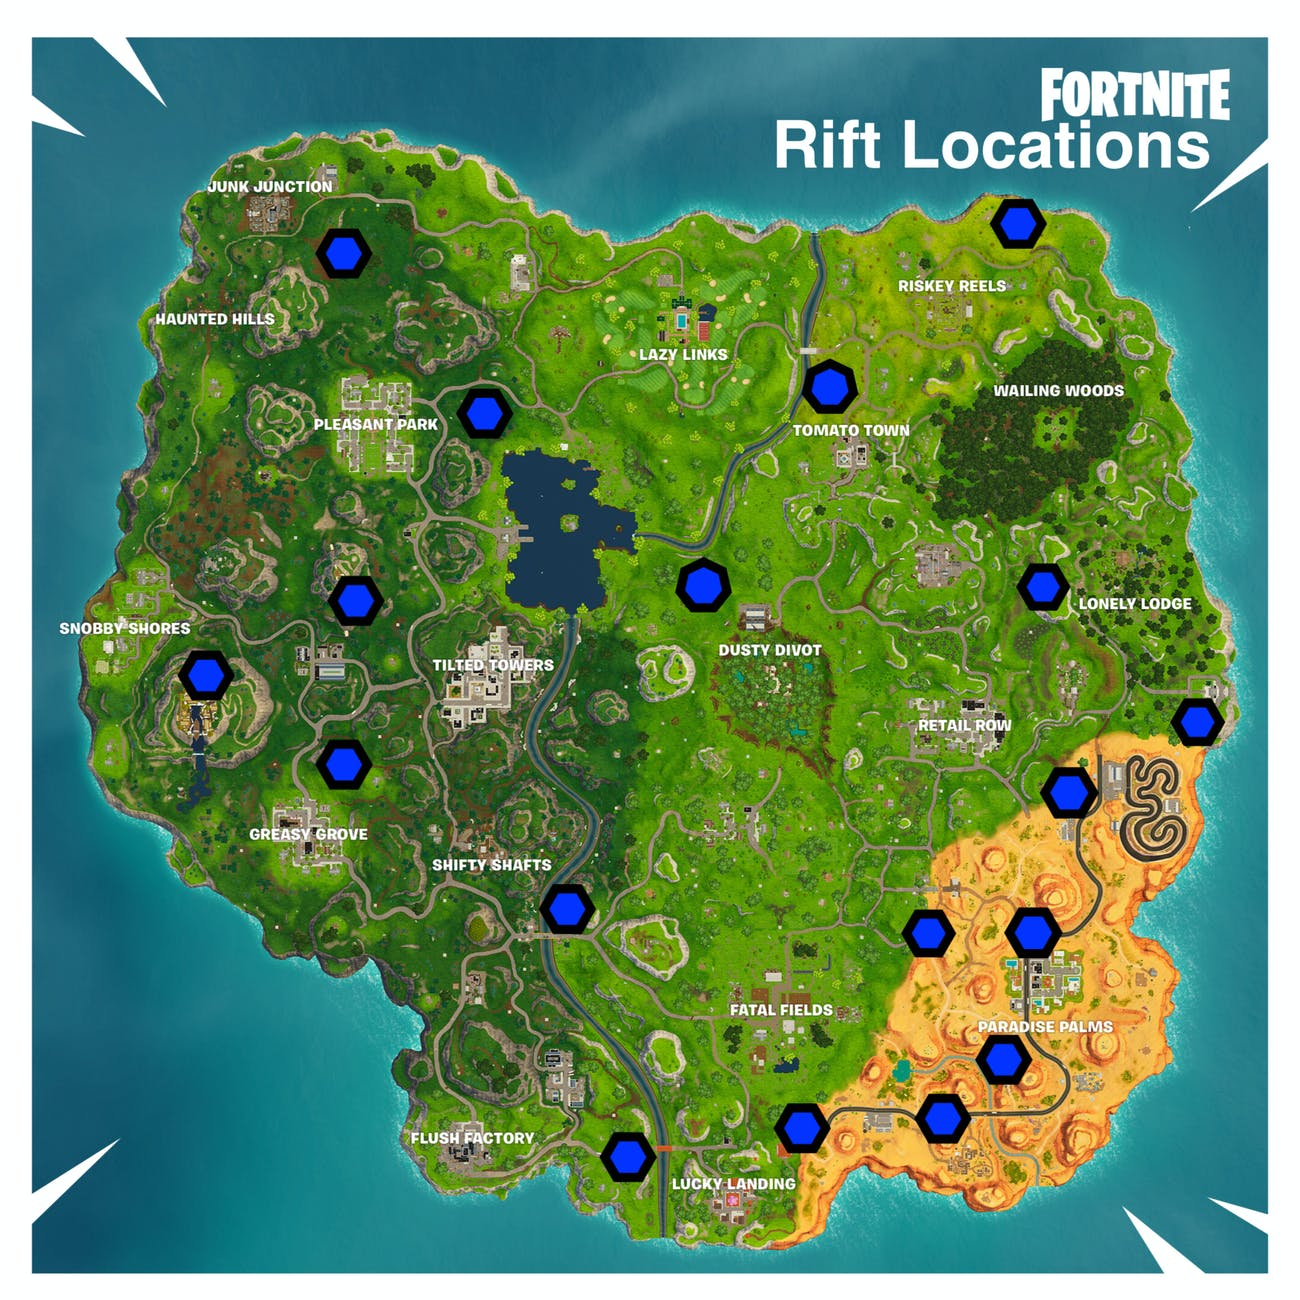 fortnite rift locations map season 5